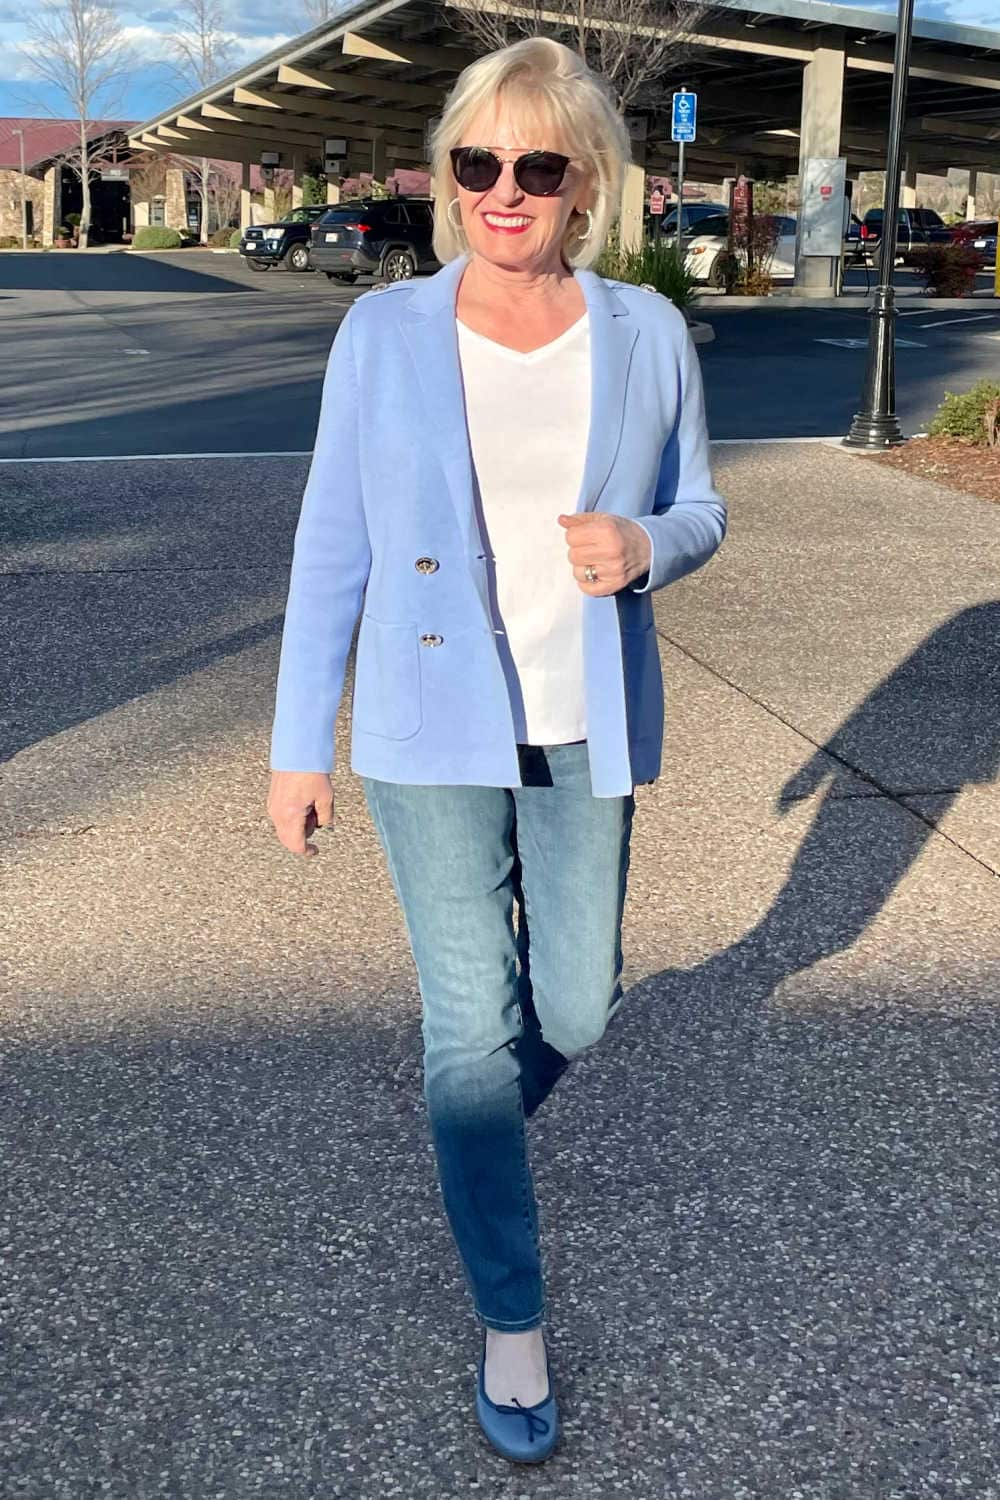 jennifer of well styled life showing why a double breasted jacket looks wrrong on her shape